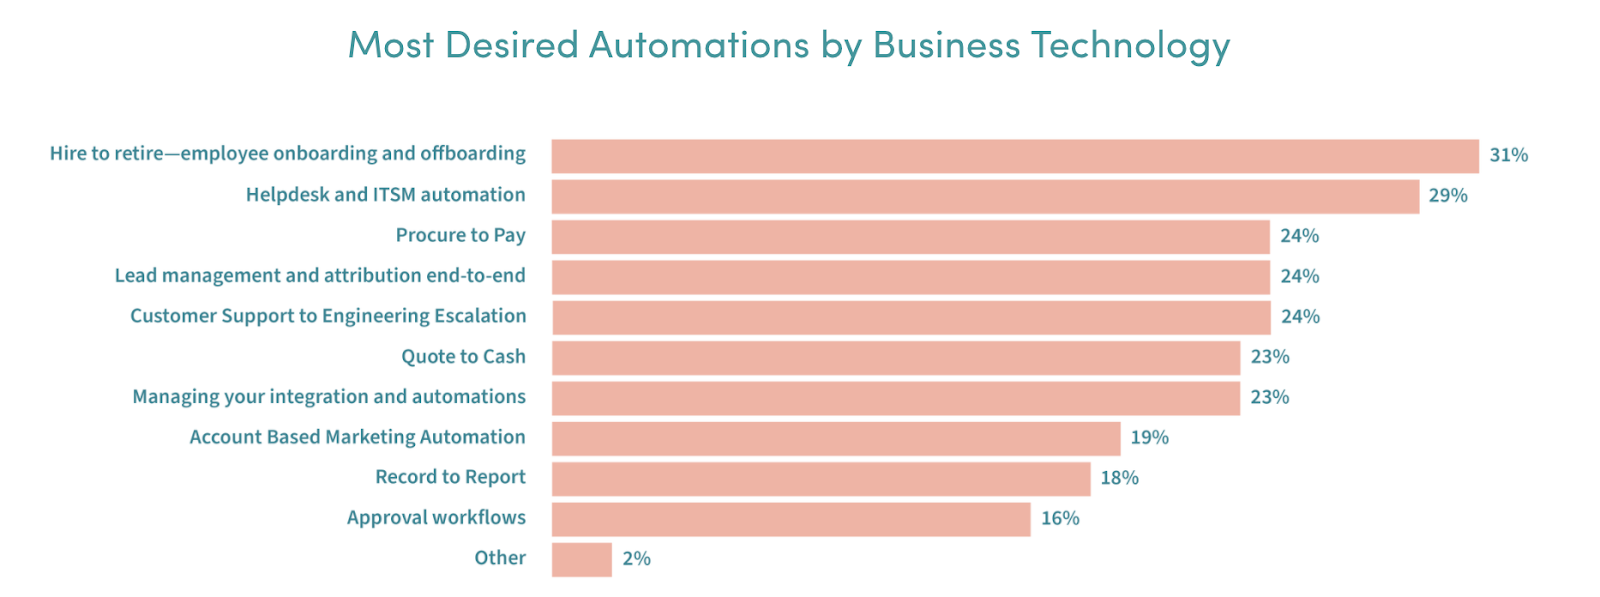 A bar chart that breaks down the most desired automations by BT.